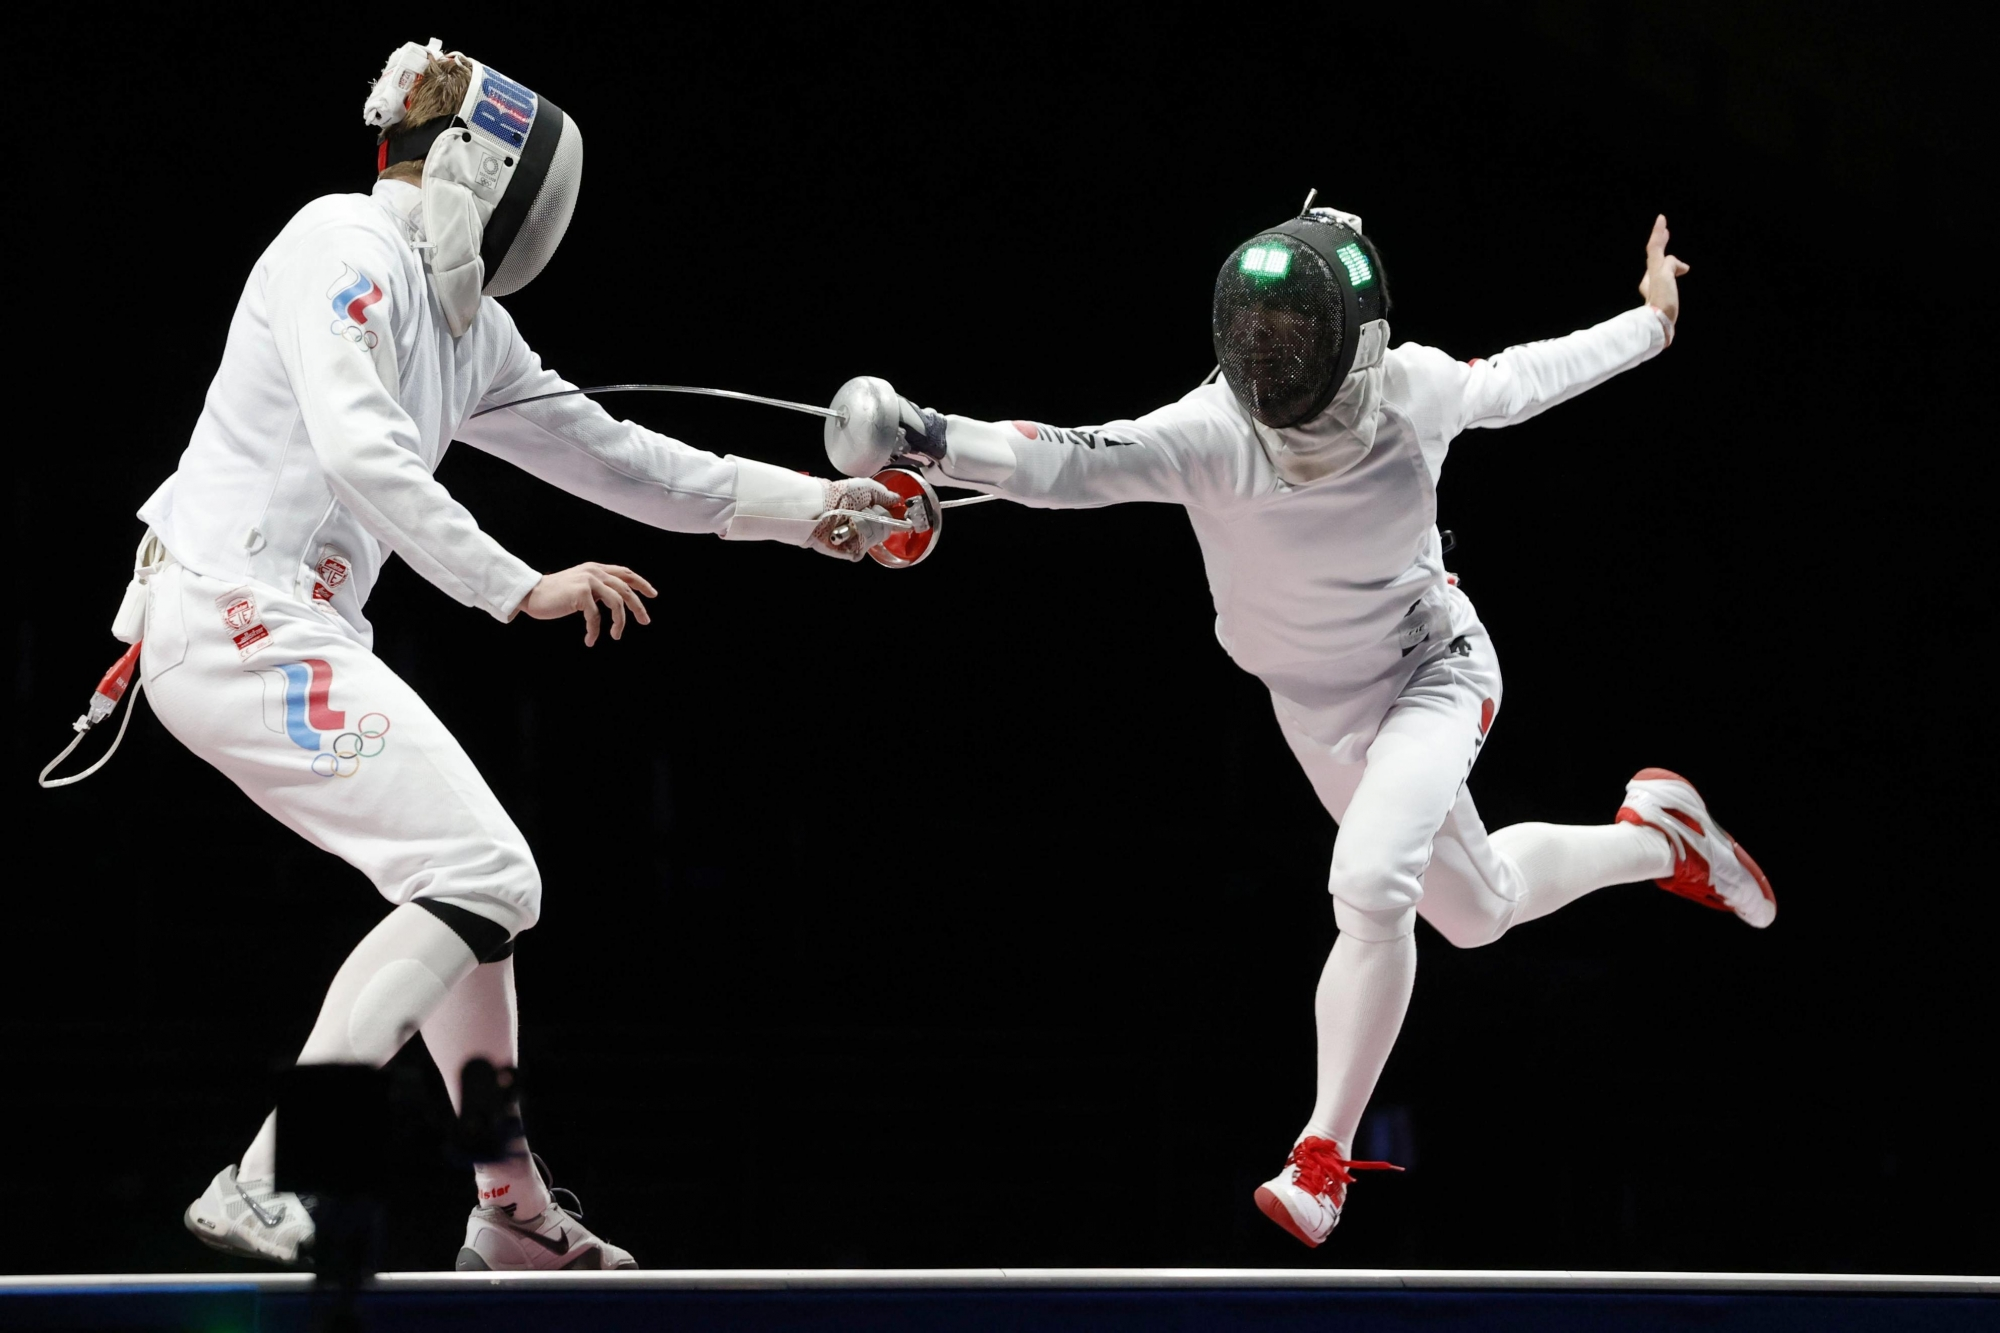 Alumnus Koki Kano's victory leads to Japan's first Olympic fencing gold